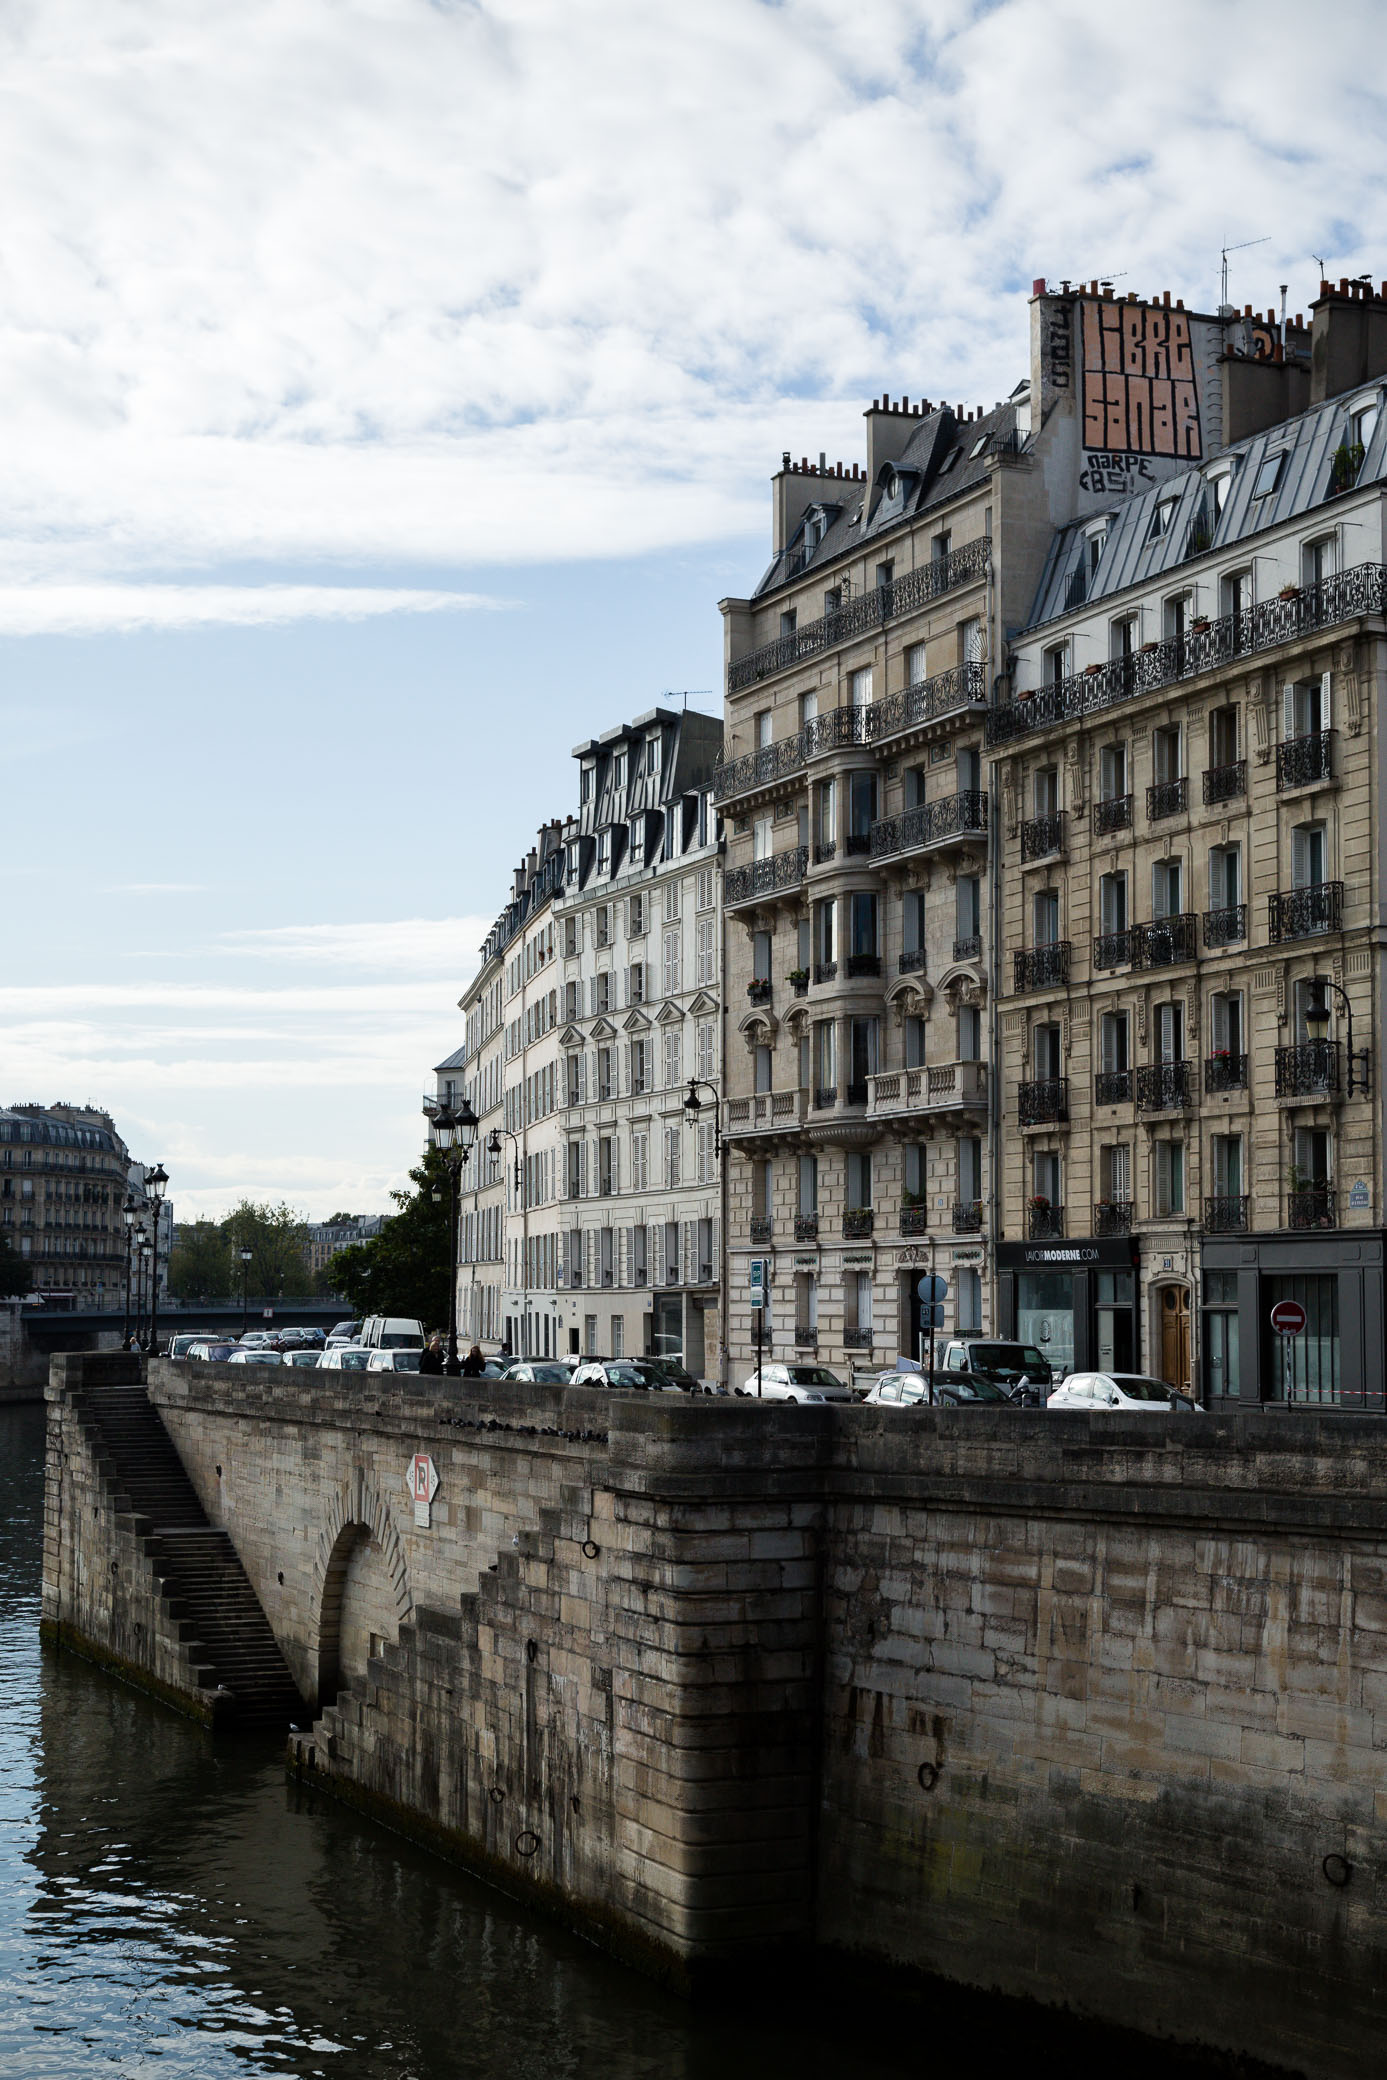 Paris somehow makes you believe anything is possible. -